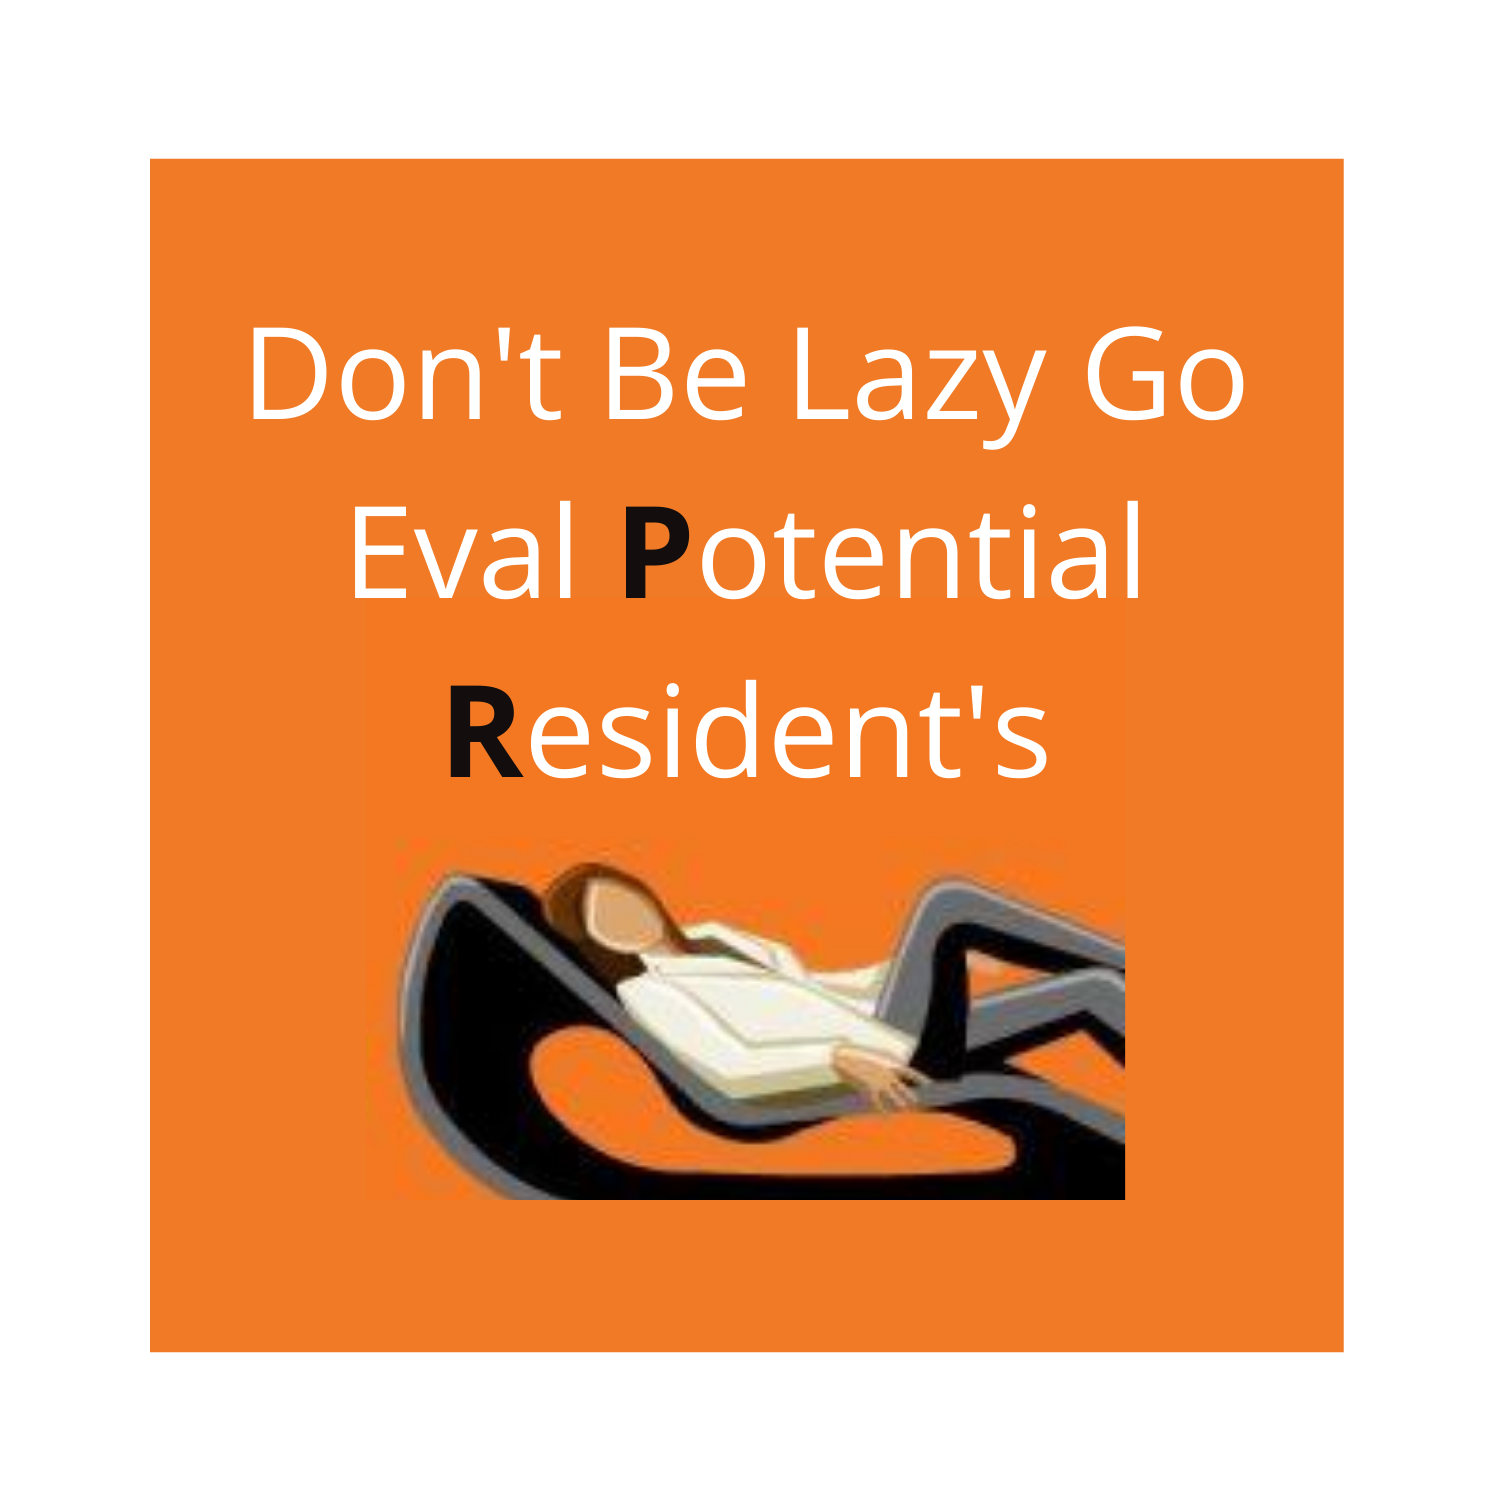 Don't Be Lazy Go Eval Potential Resident's